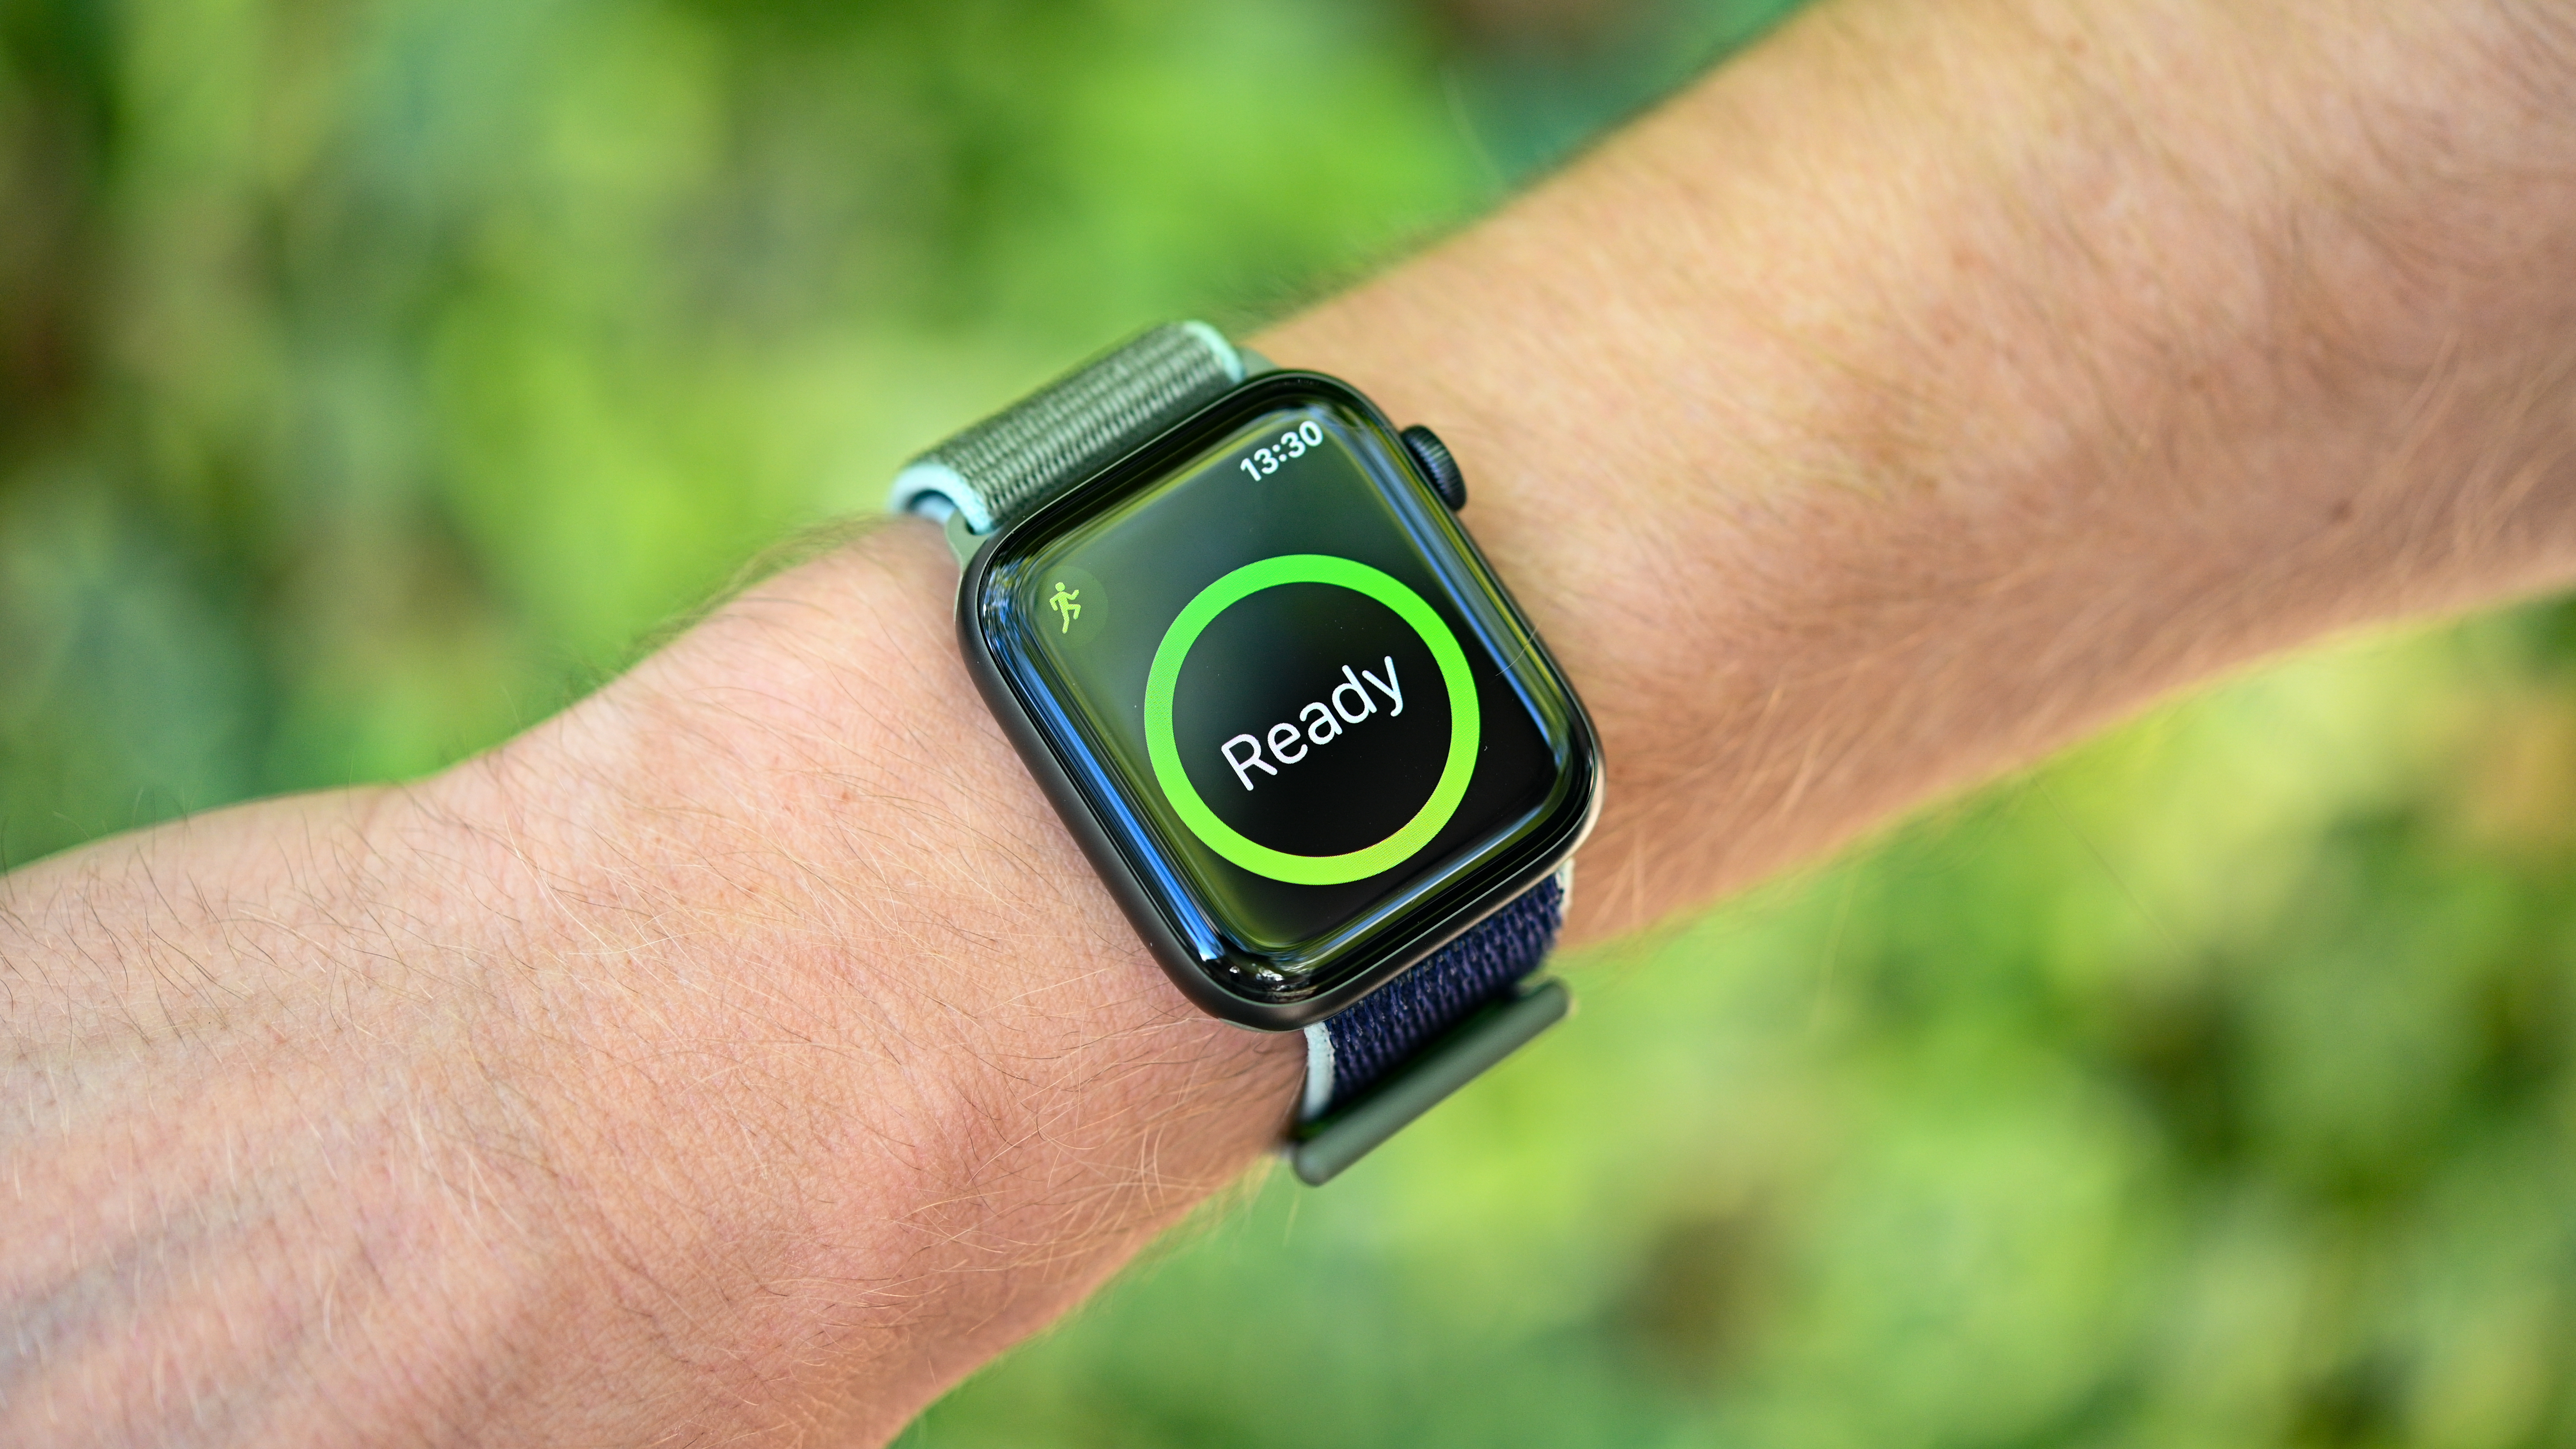 Apple Watch 6 looks set to track sleep, but watchOS 7 may not work with your watch